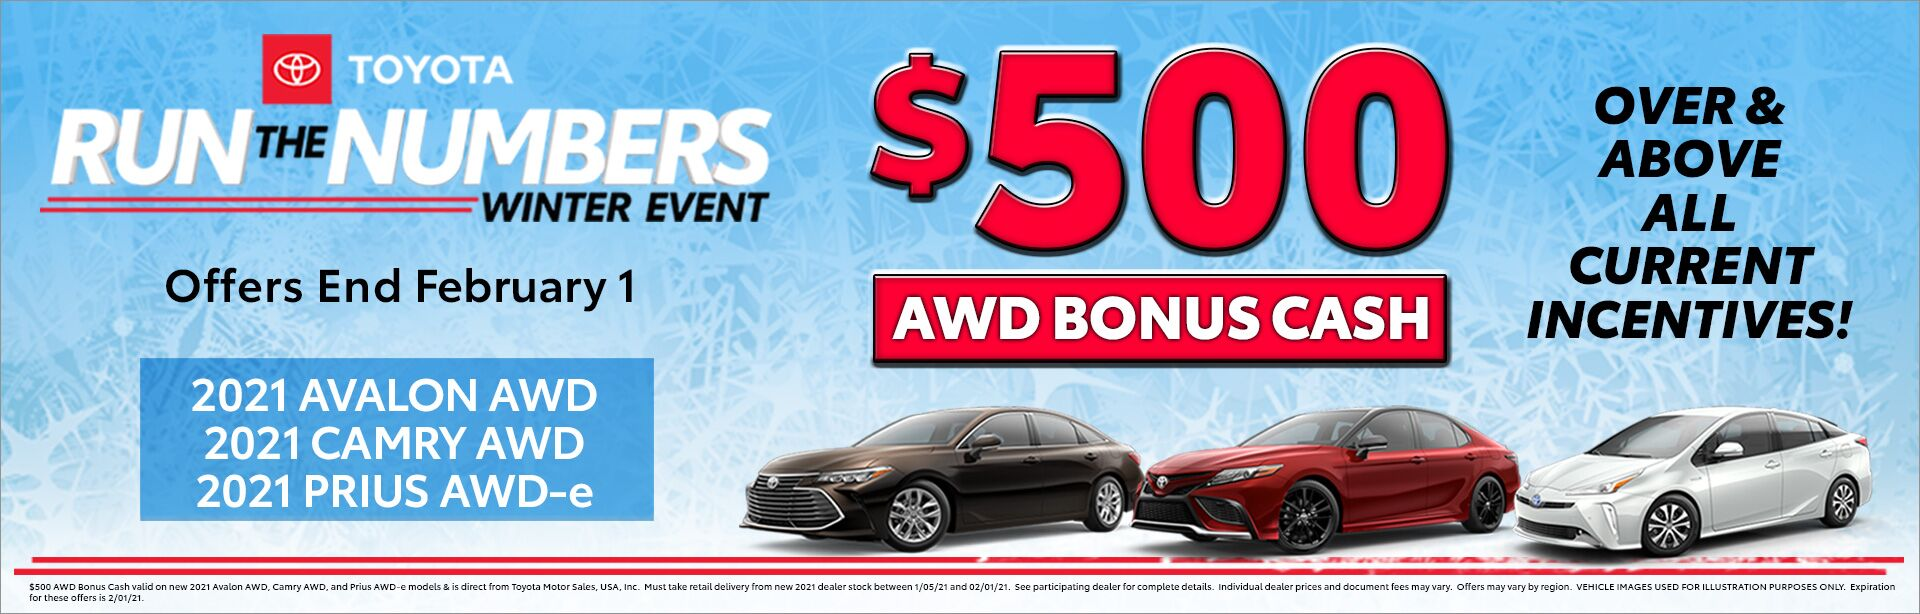 AWD Run the Numbers Bonus Cash